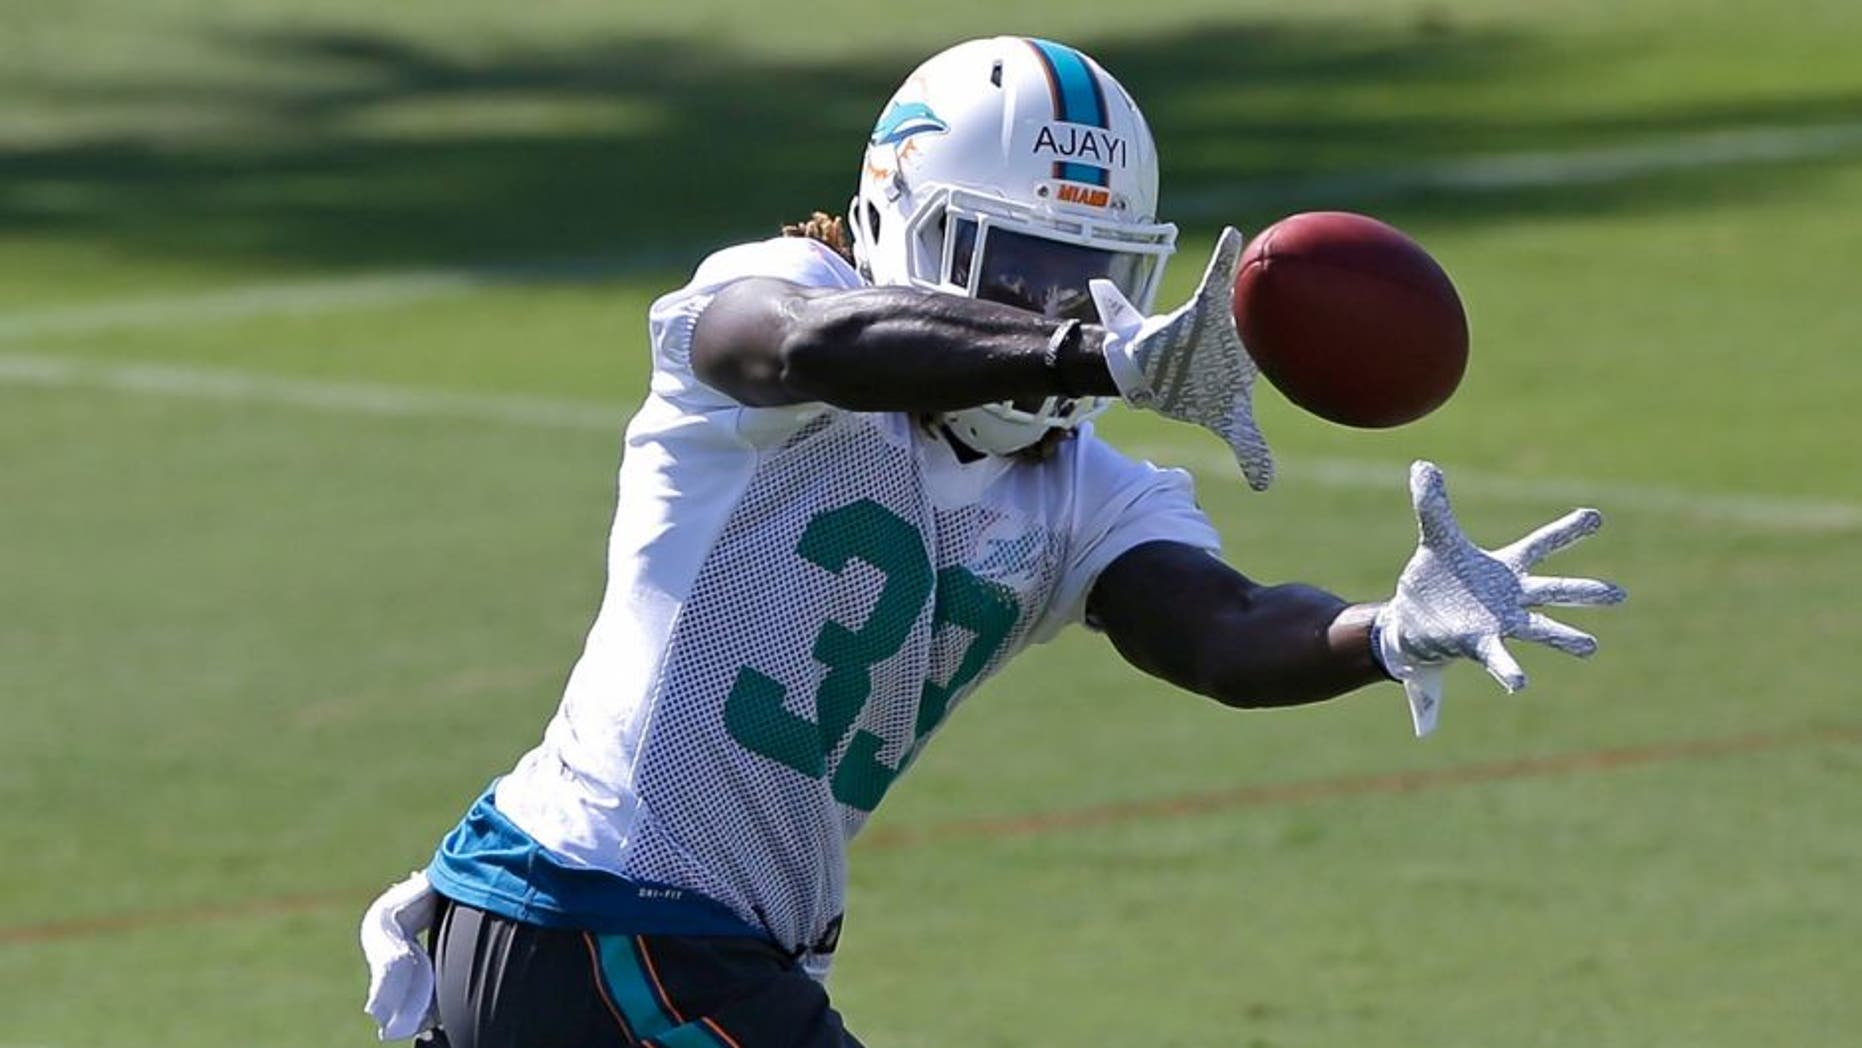 Miami Dolphins rookie Jay Ajayi prepares to catch a pass during NFL football rookie minicamp, Saturday, May 9, 2015, in Davie, Fla. (AP Photo/Alan Diaz)